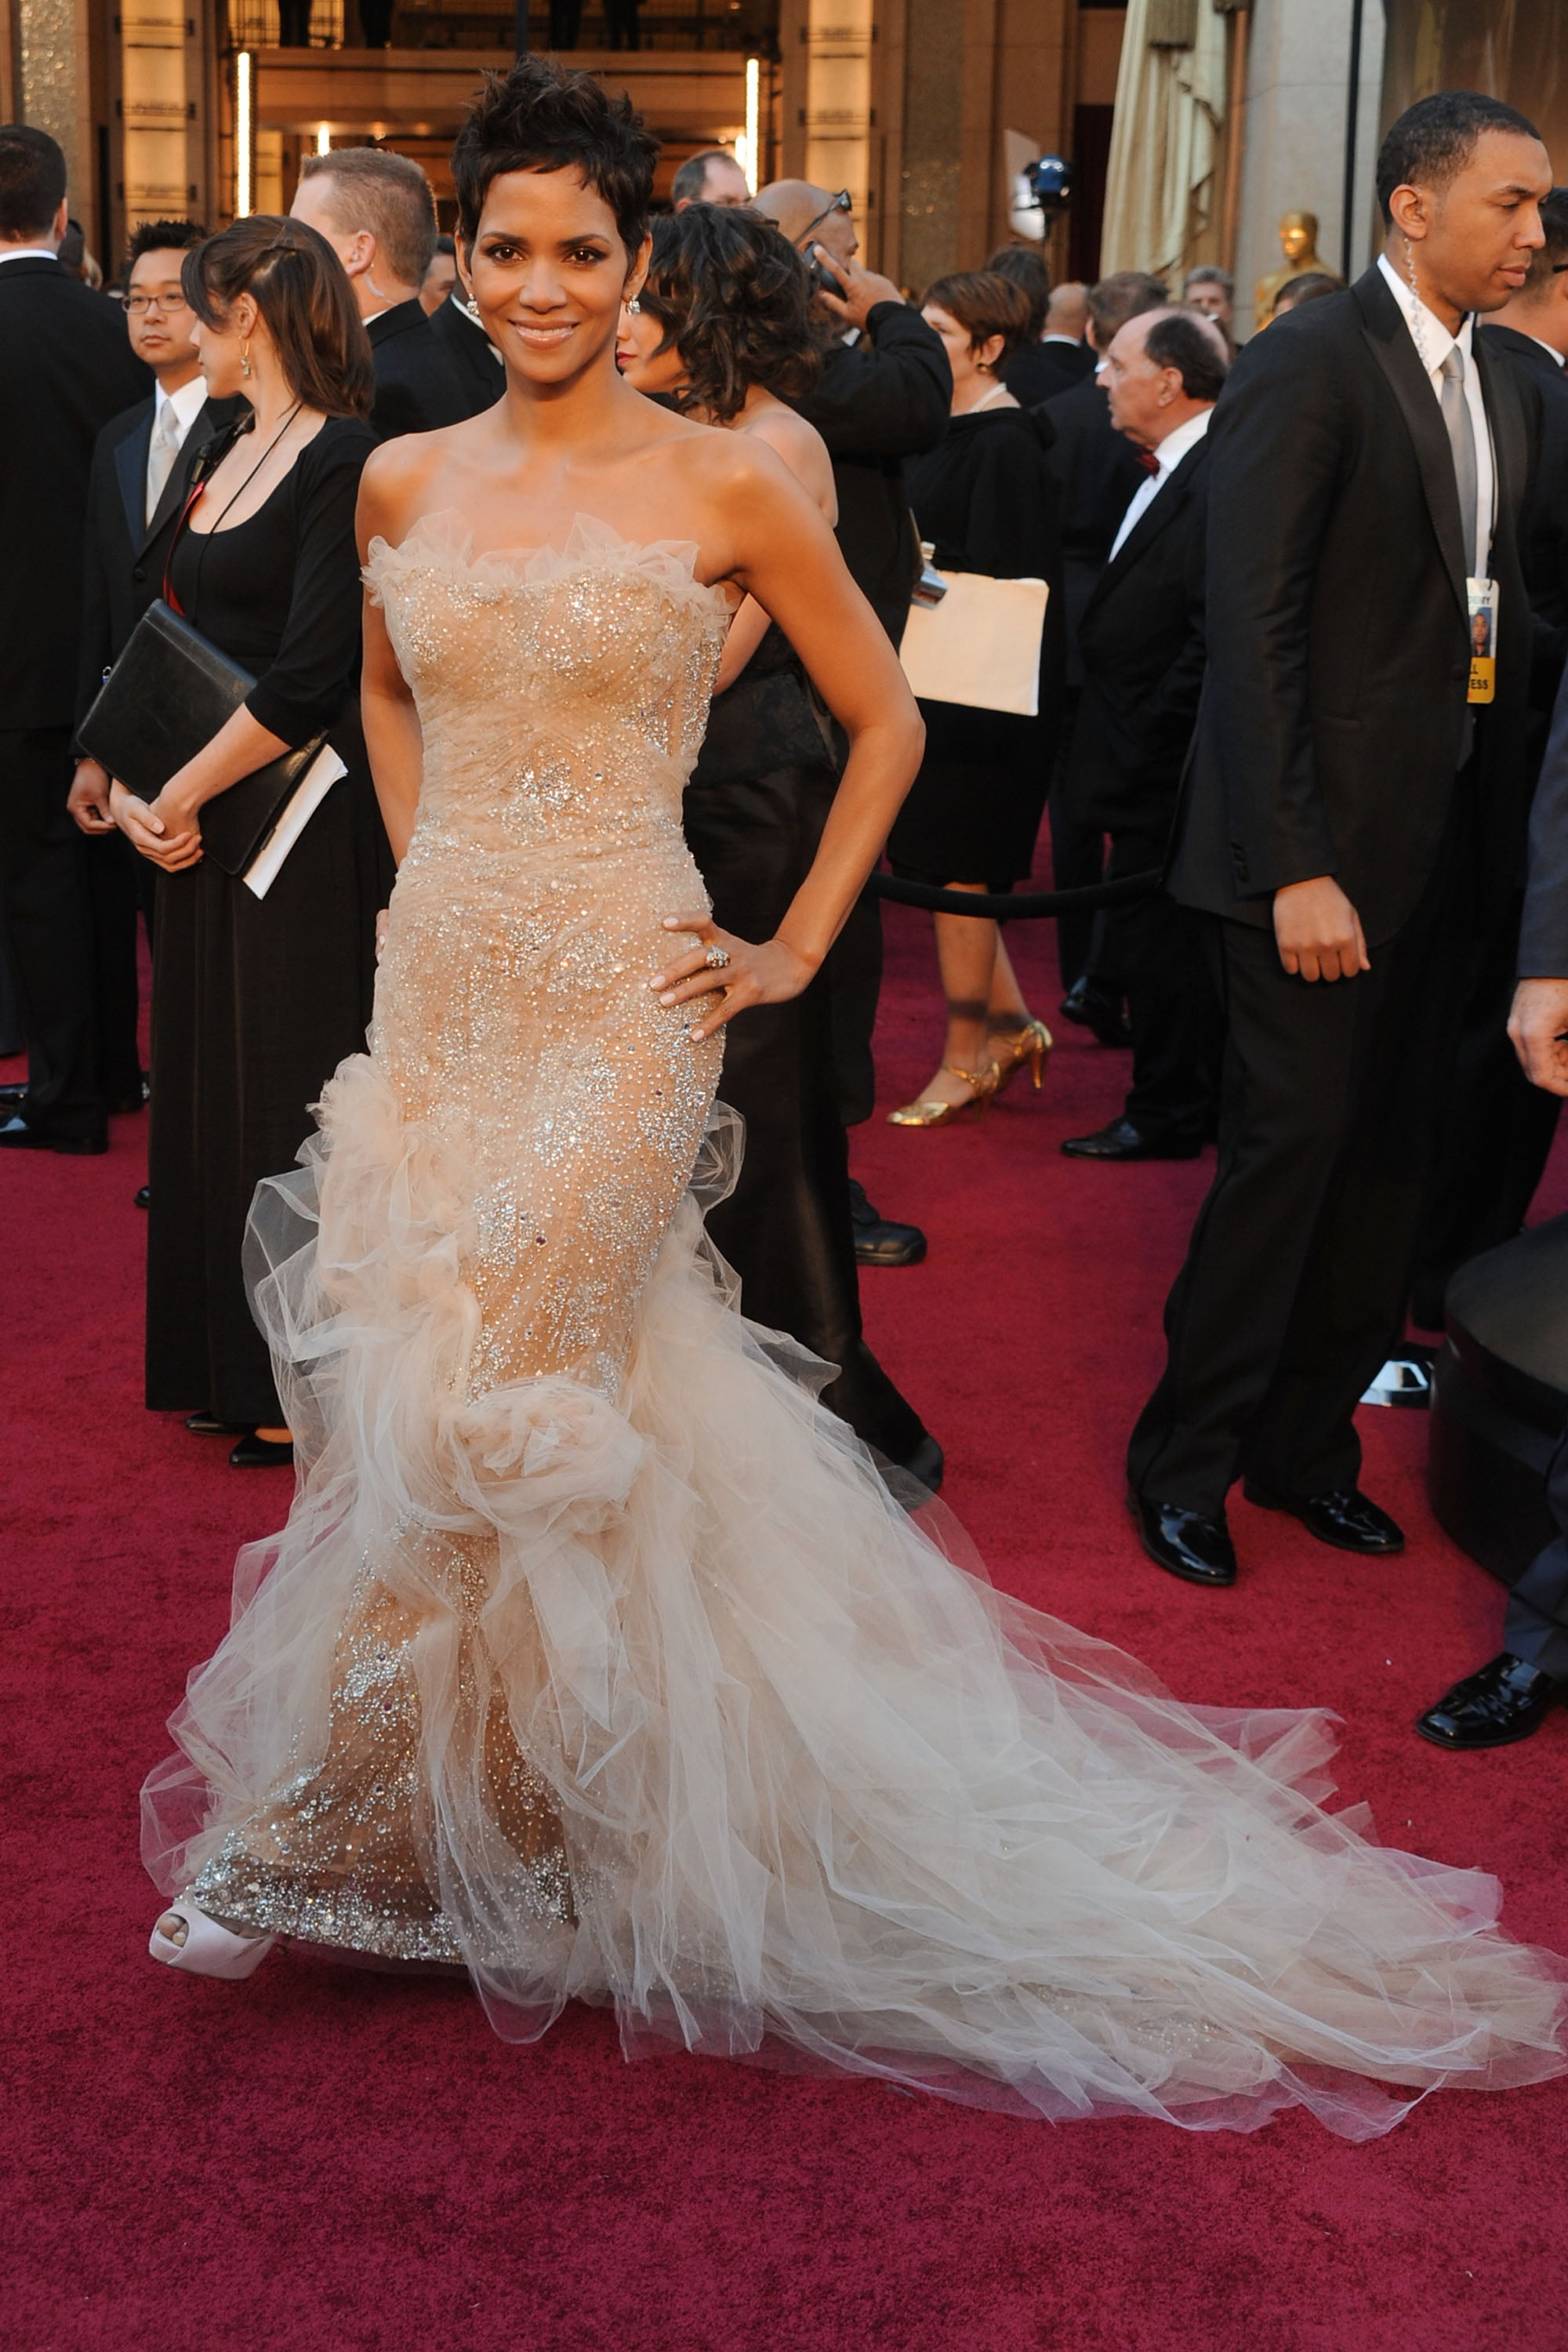 She can still indulge her girlier side in the most glamorous way possible — as evidenced by this nude Marchesa confection at the 2011 Oscars.